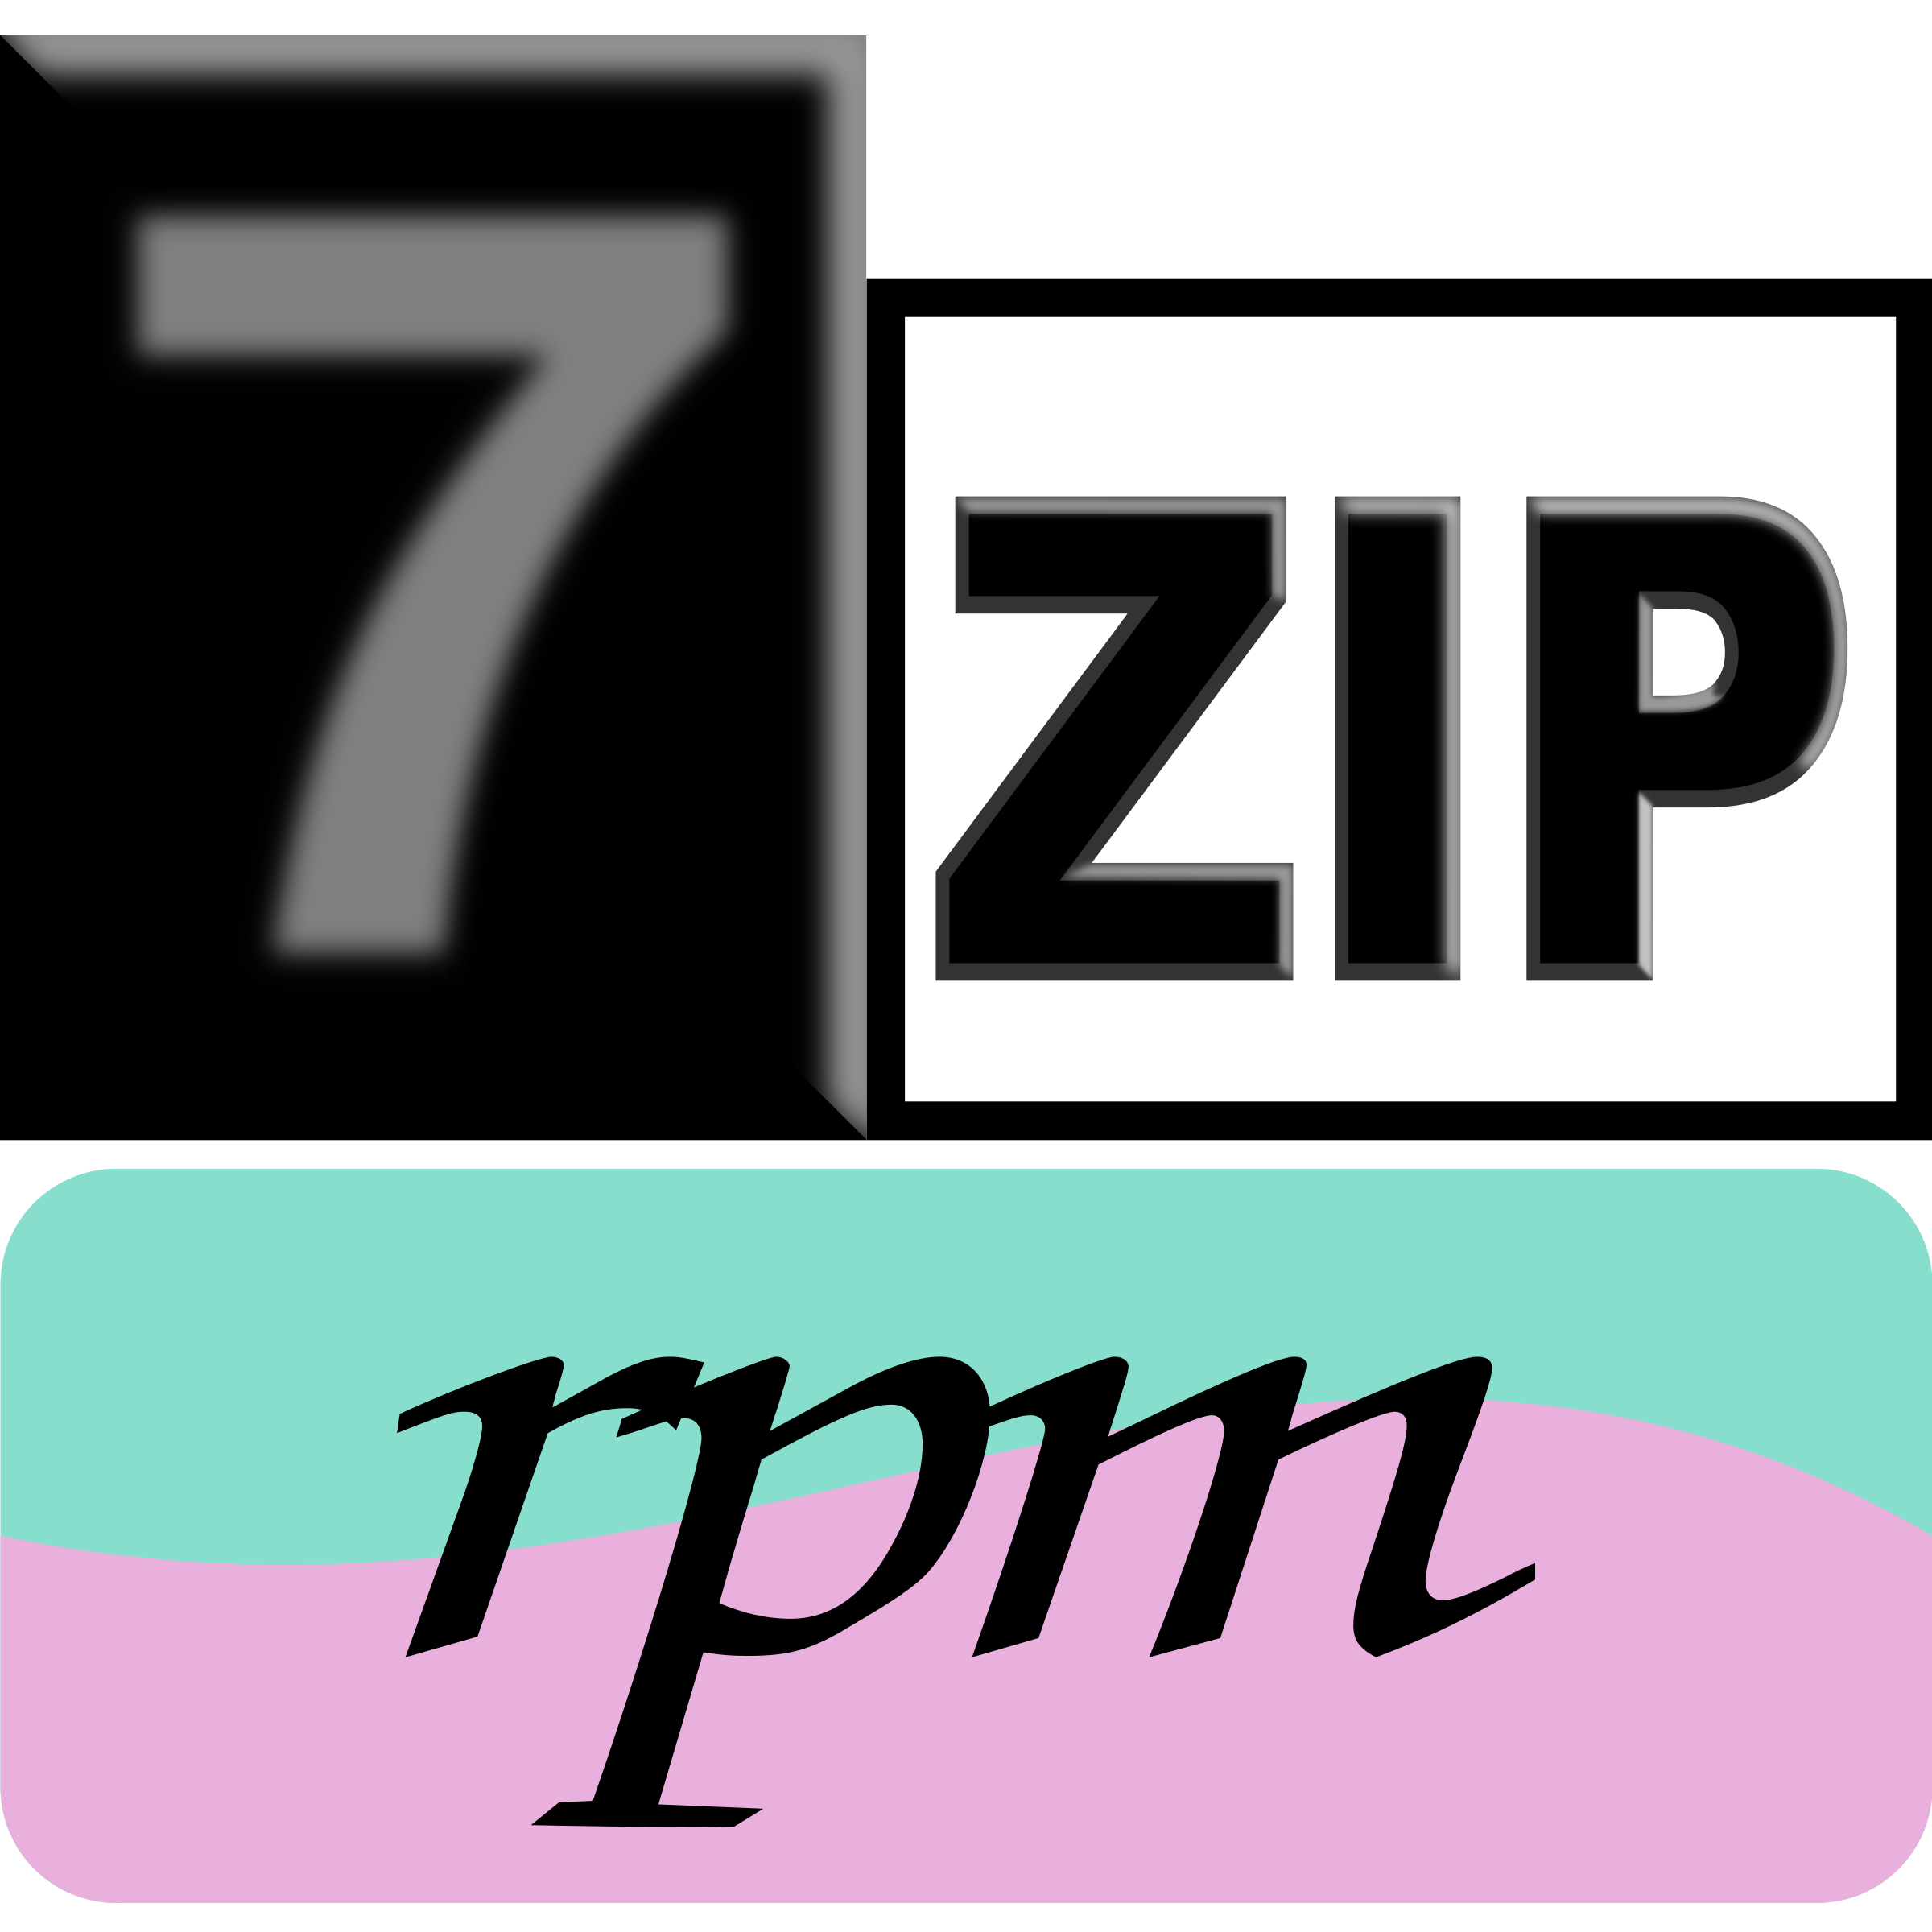 7zipClassic-rpm by kg